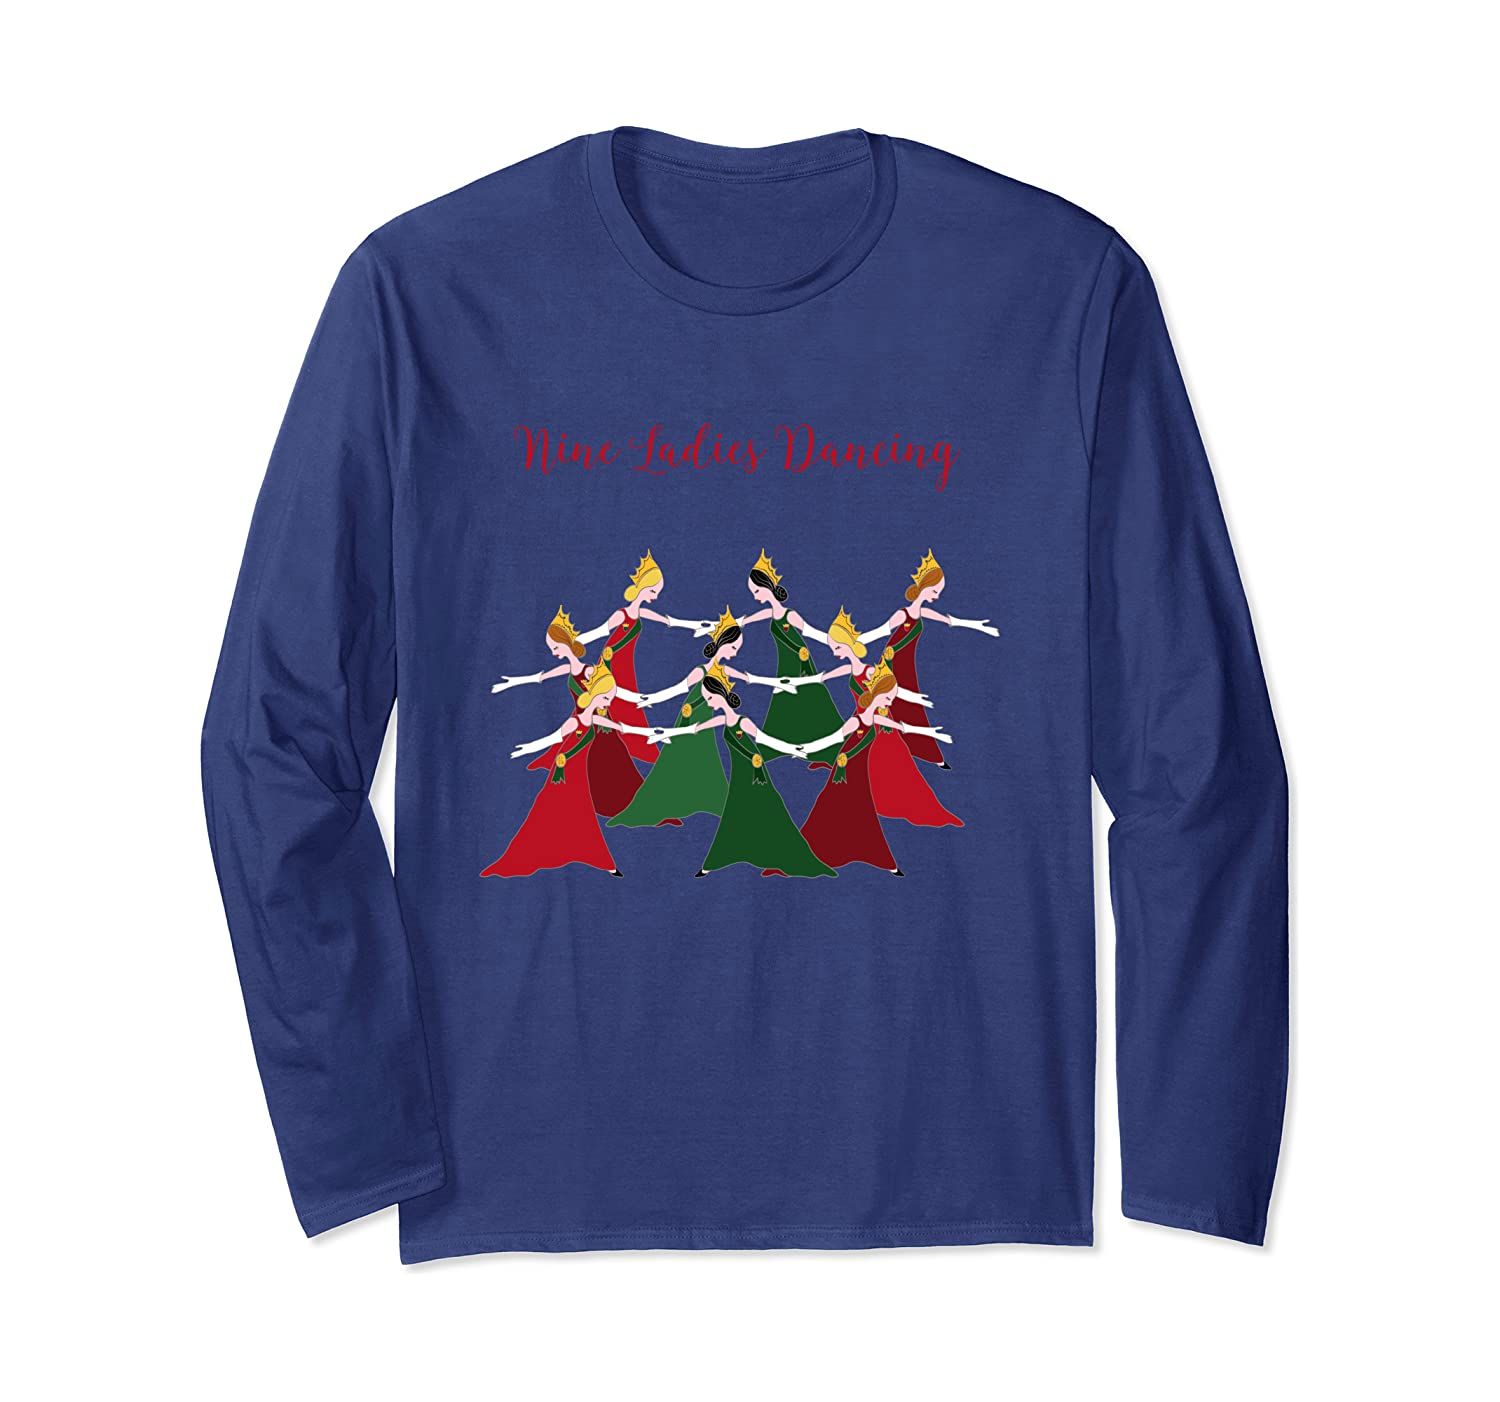 12 Days Of Christmas 9 Ladies Dancing Long Sleeve T Shirt